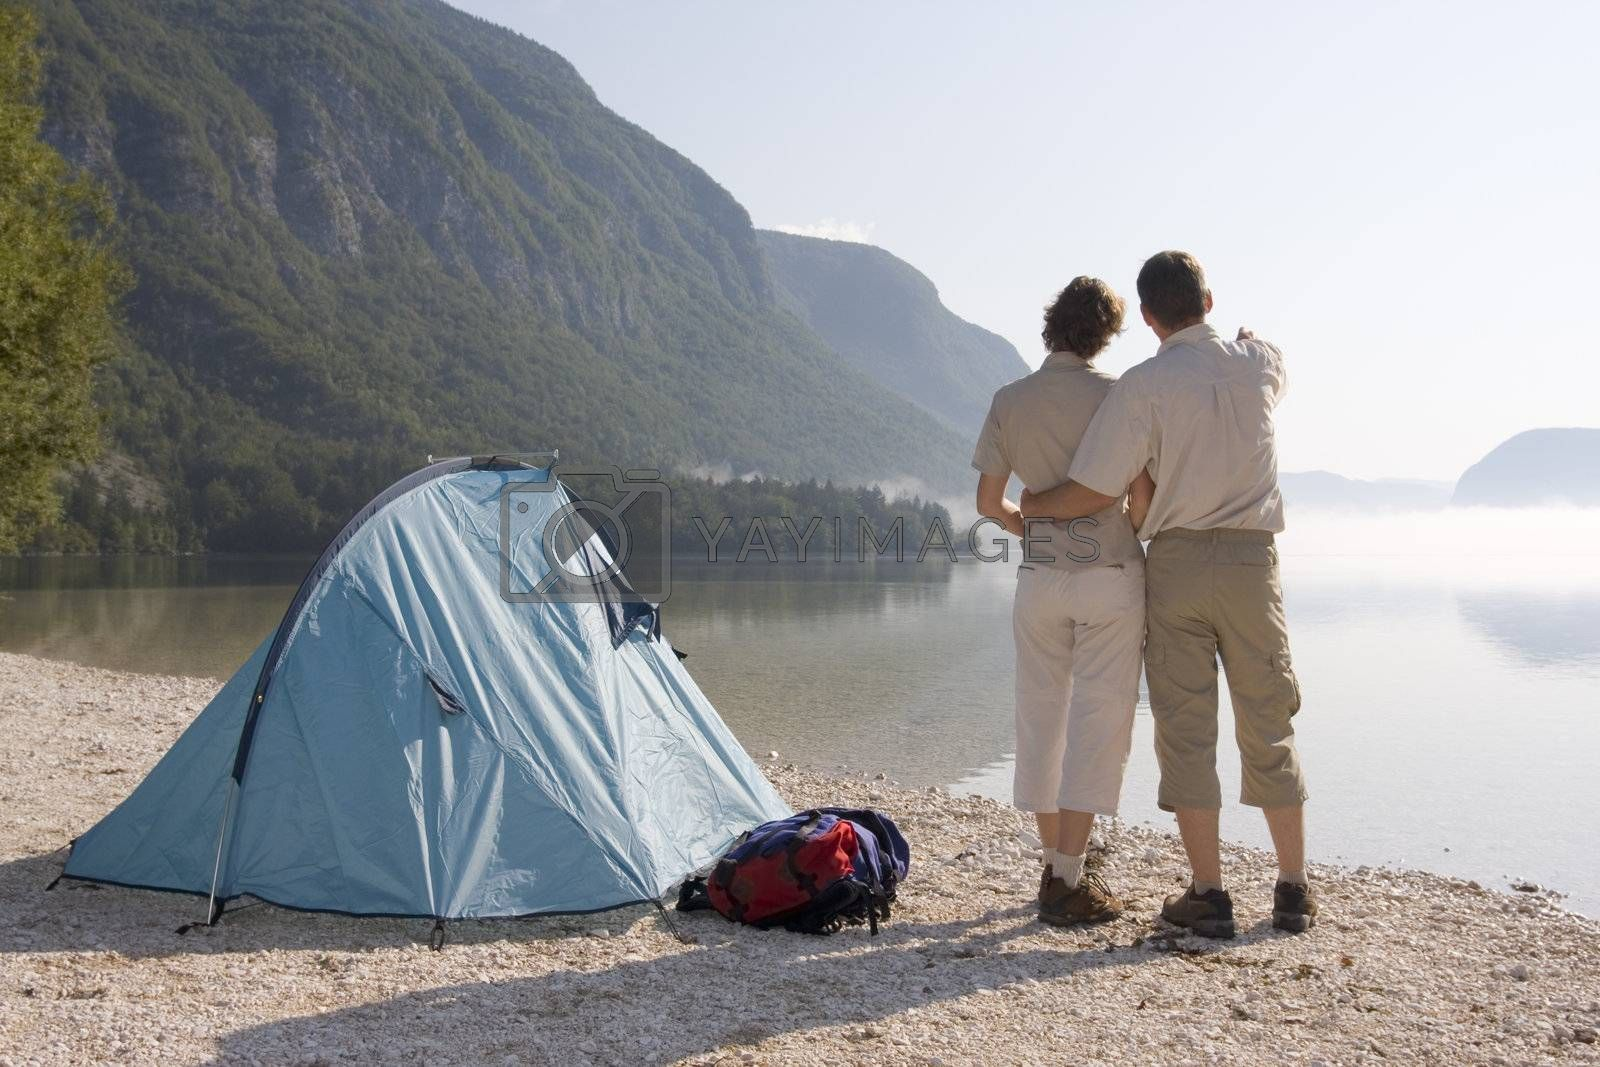 Couple standing beside a tent at a mountain lake on a misty morning